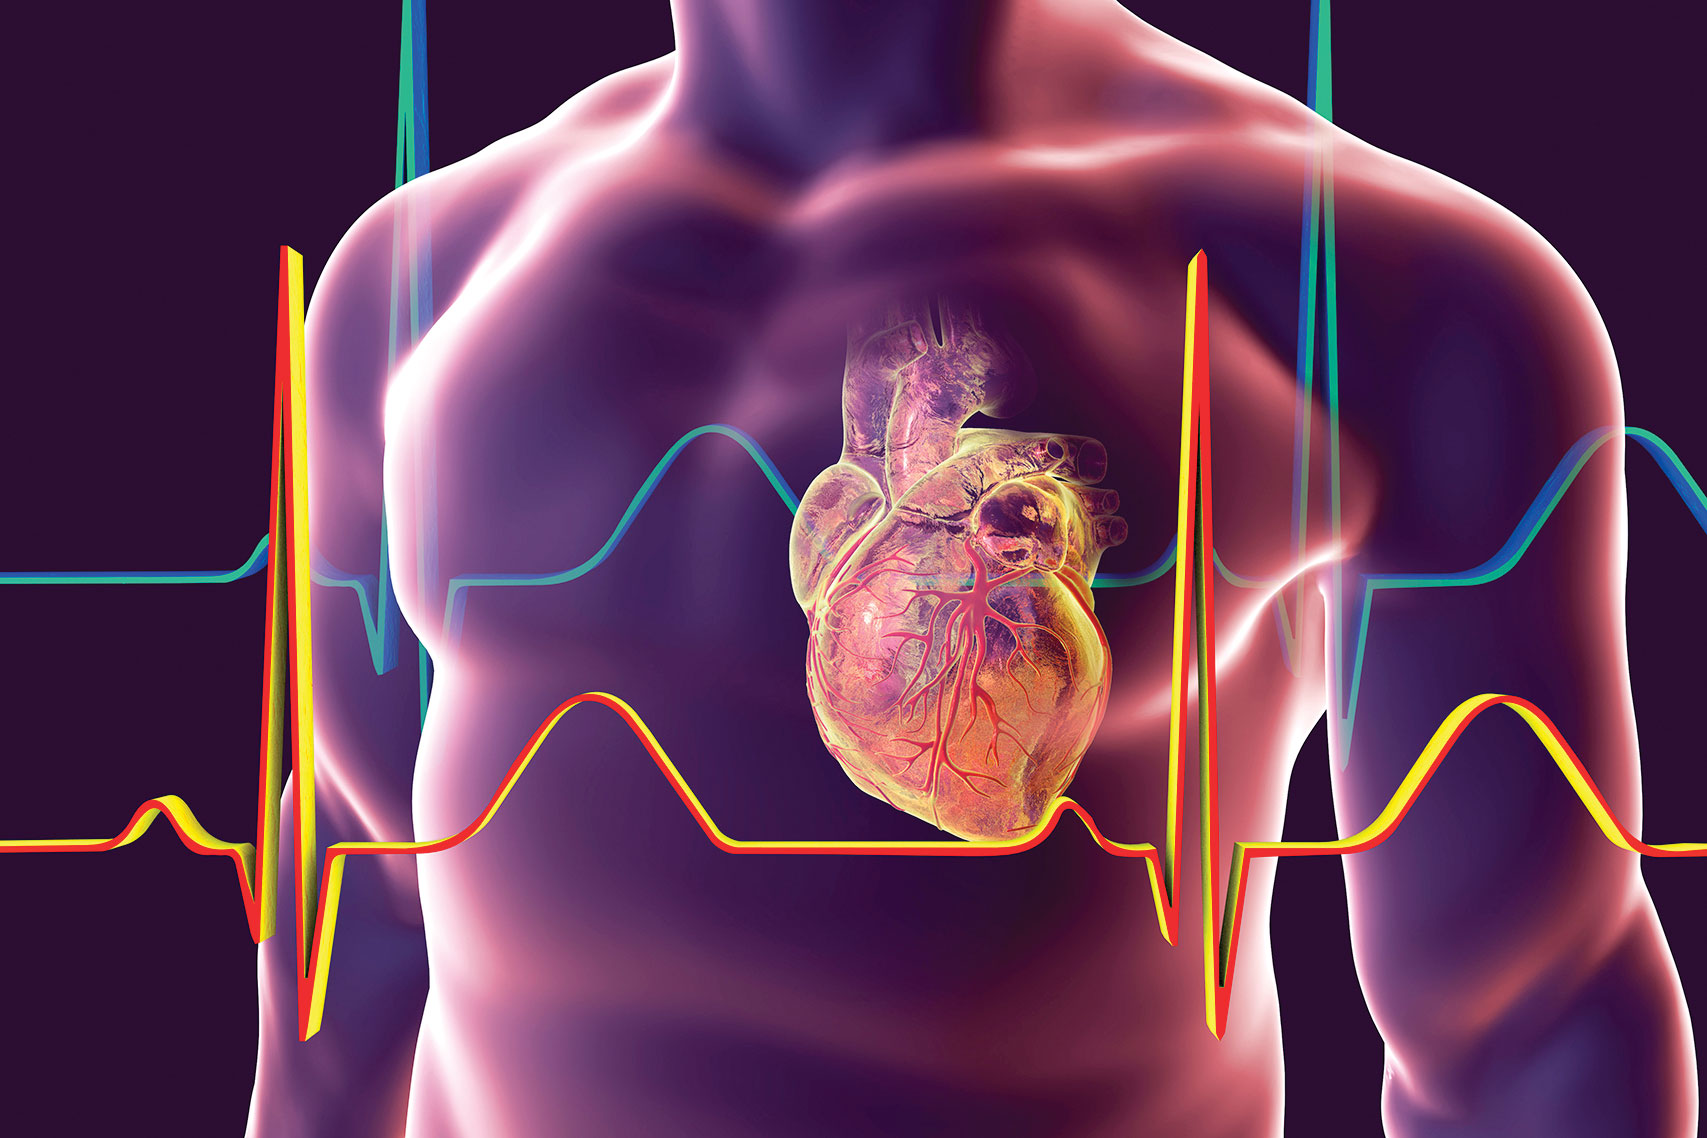 Biomarker for Heart Disease Captured by Novel Nanoparticle Technology